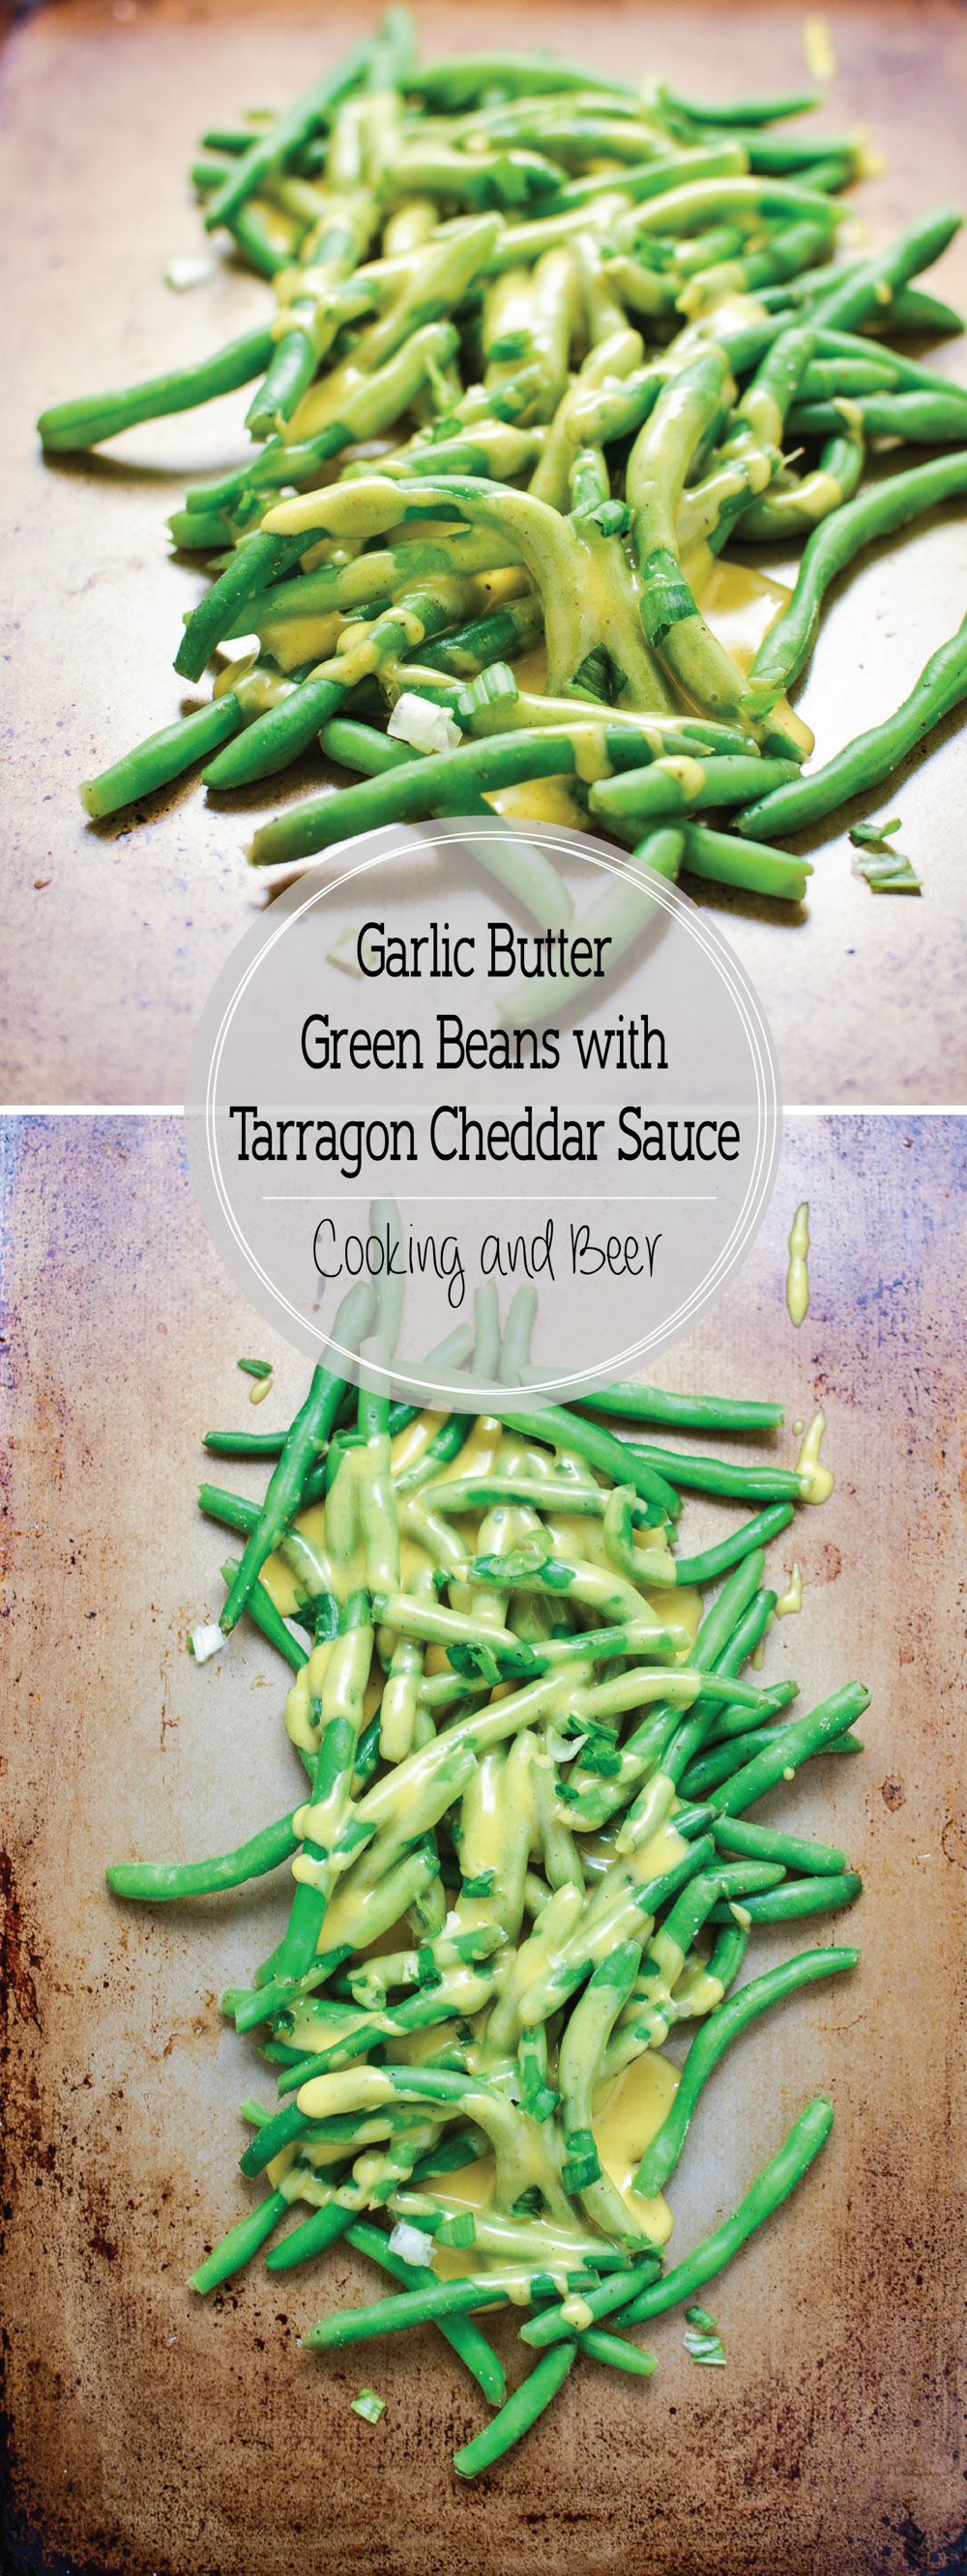 Garlic Butter Green Beans with Tarragon Cheddar Cheese Sauce are the perfect simple yet delicious side dish recipe for your Easter or Mother's Day spreads!